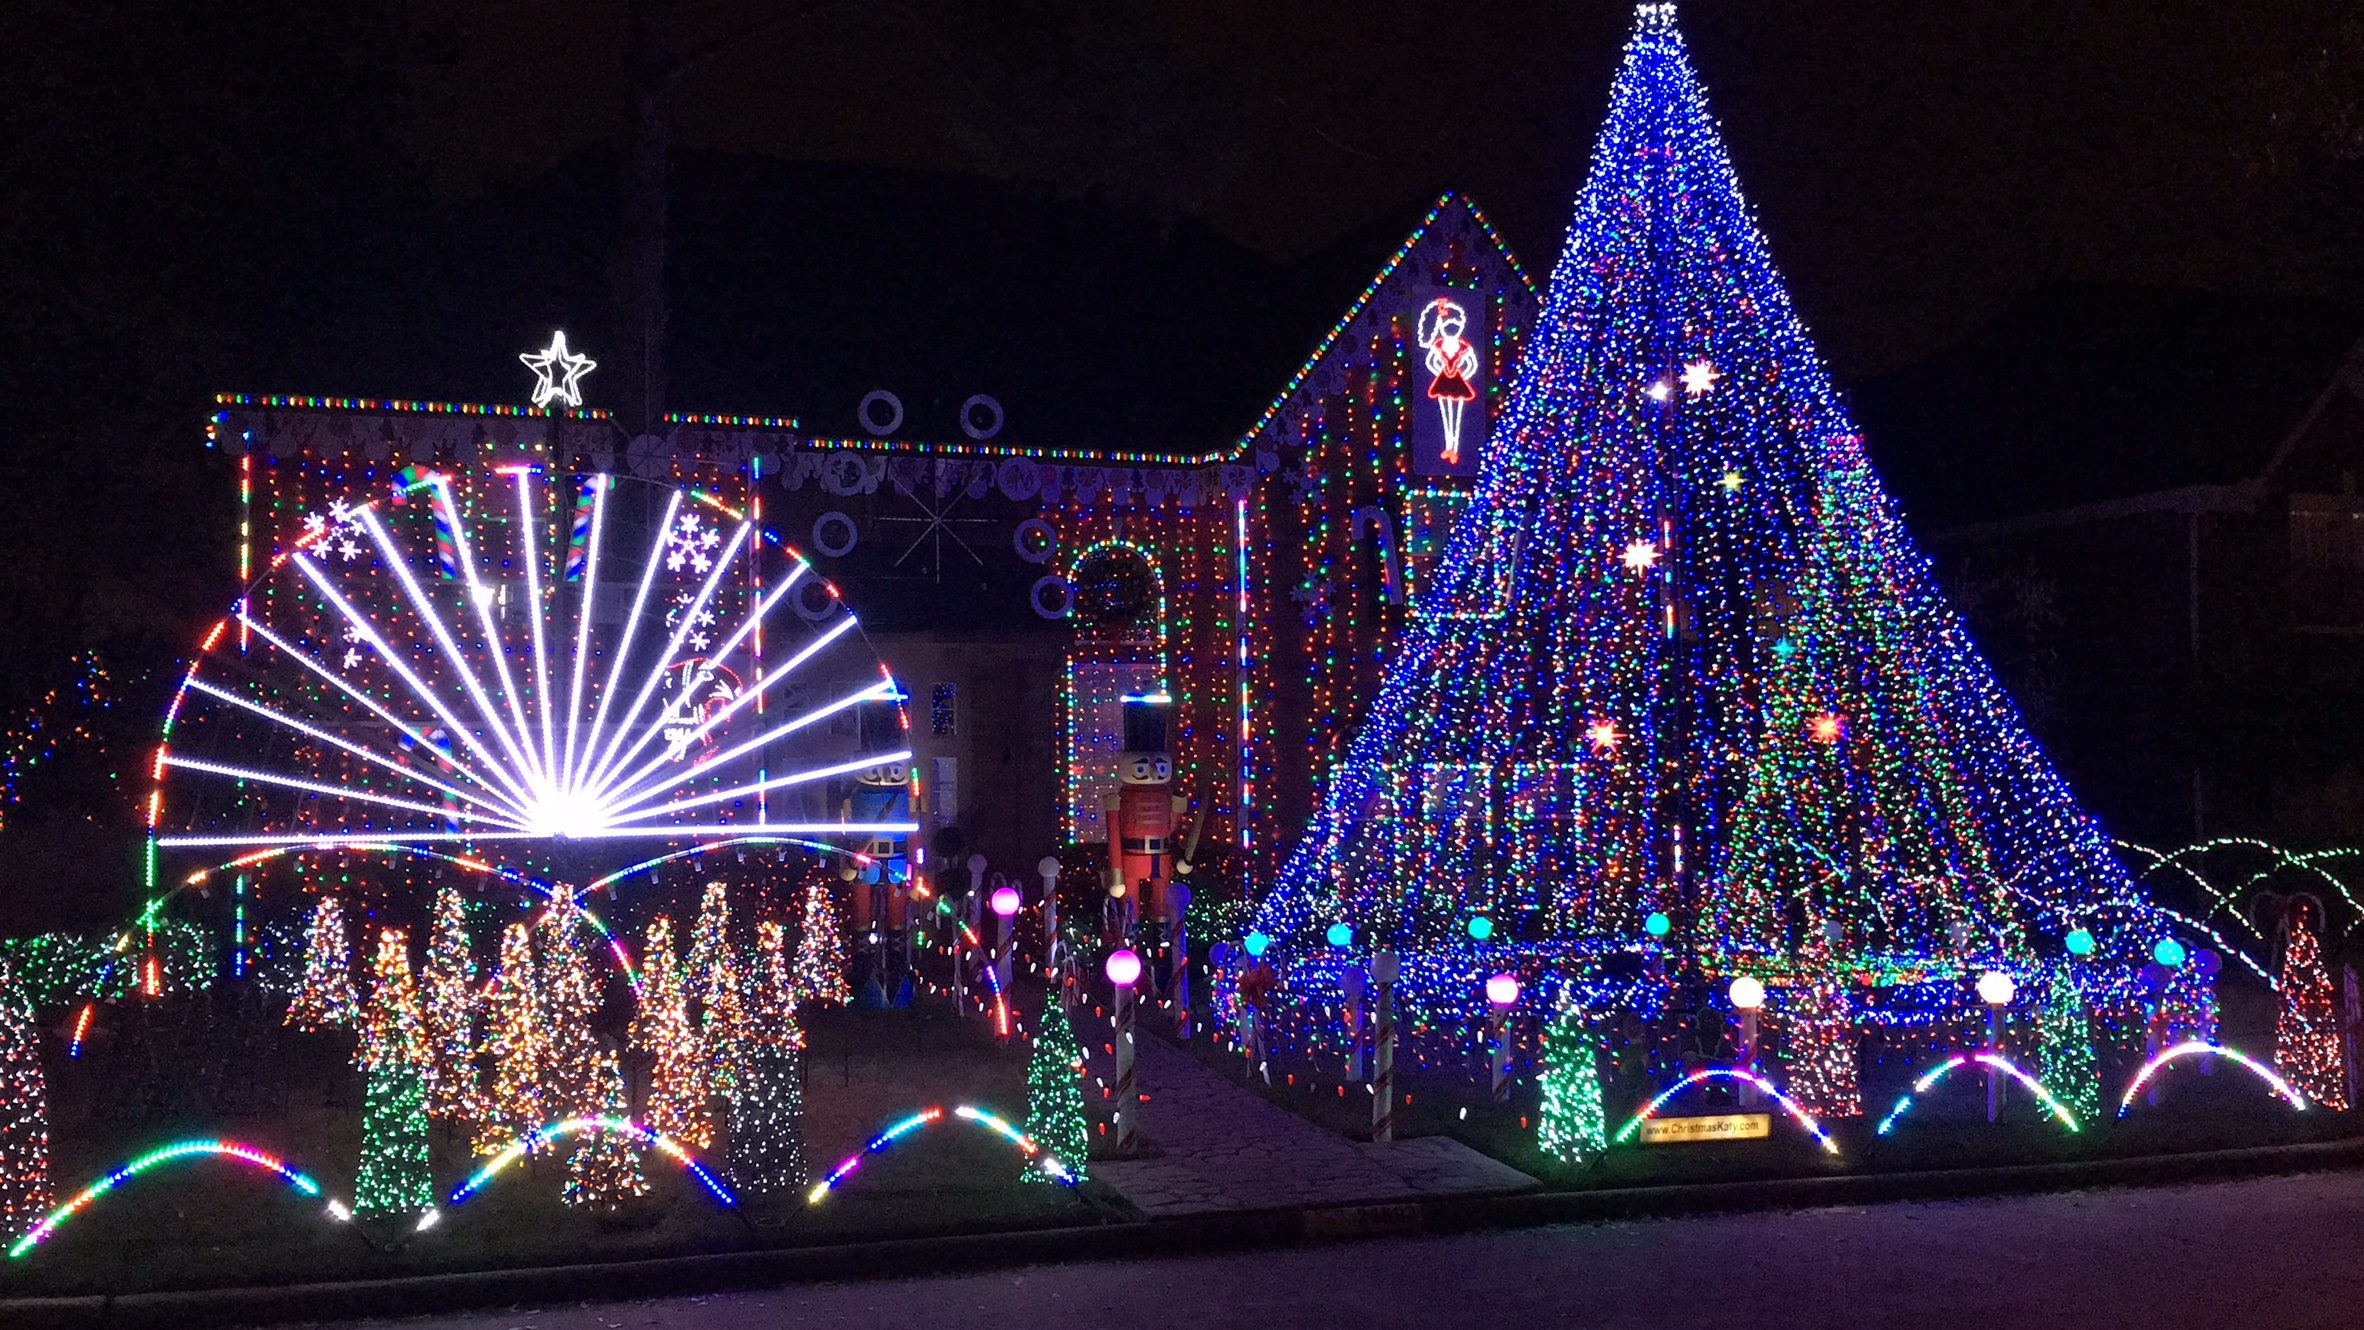 A plethora of Christmas lights on the front lawn